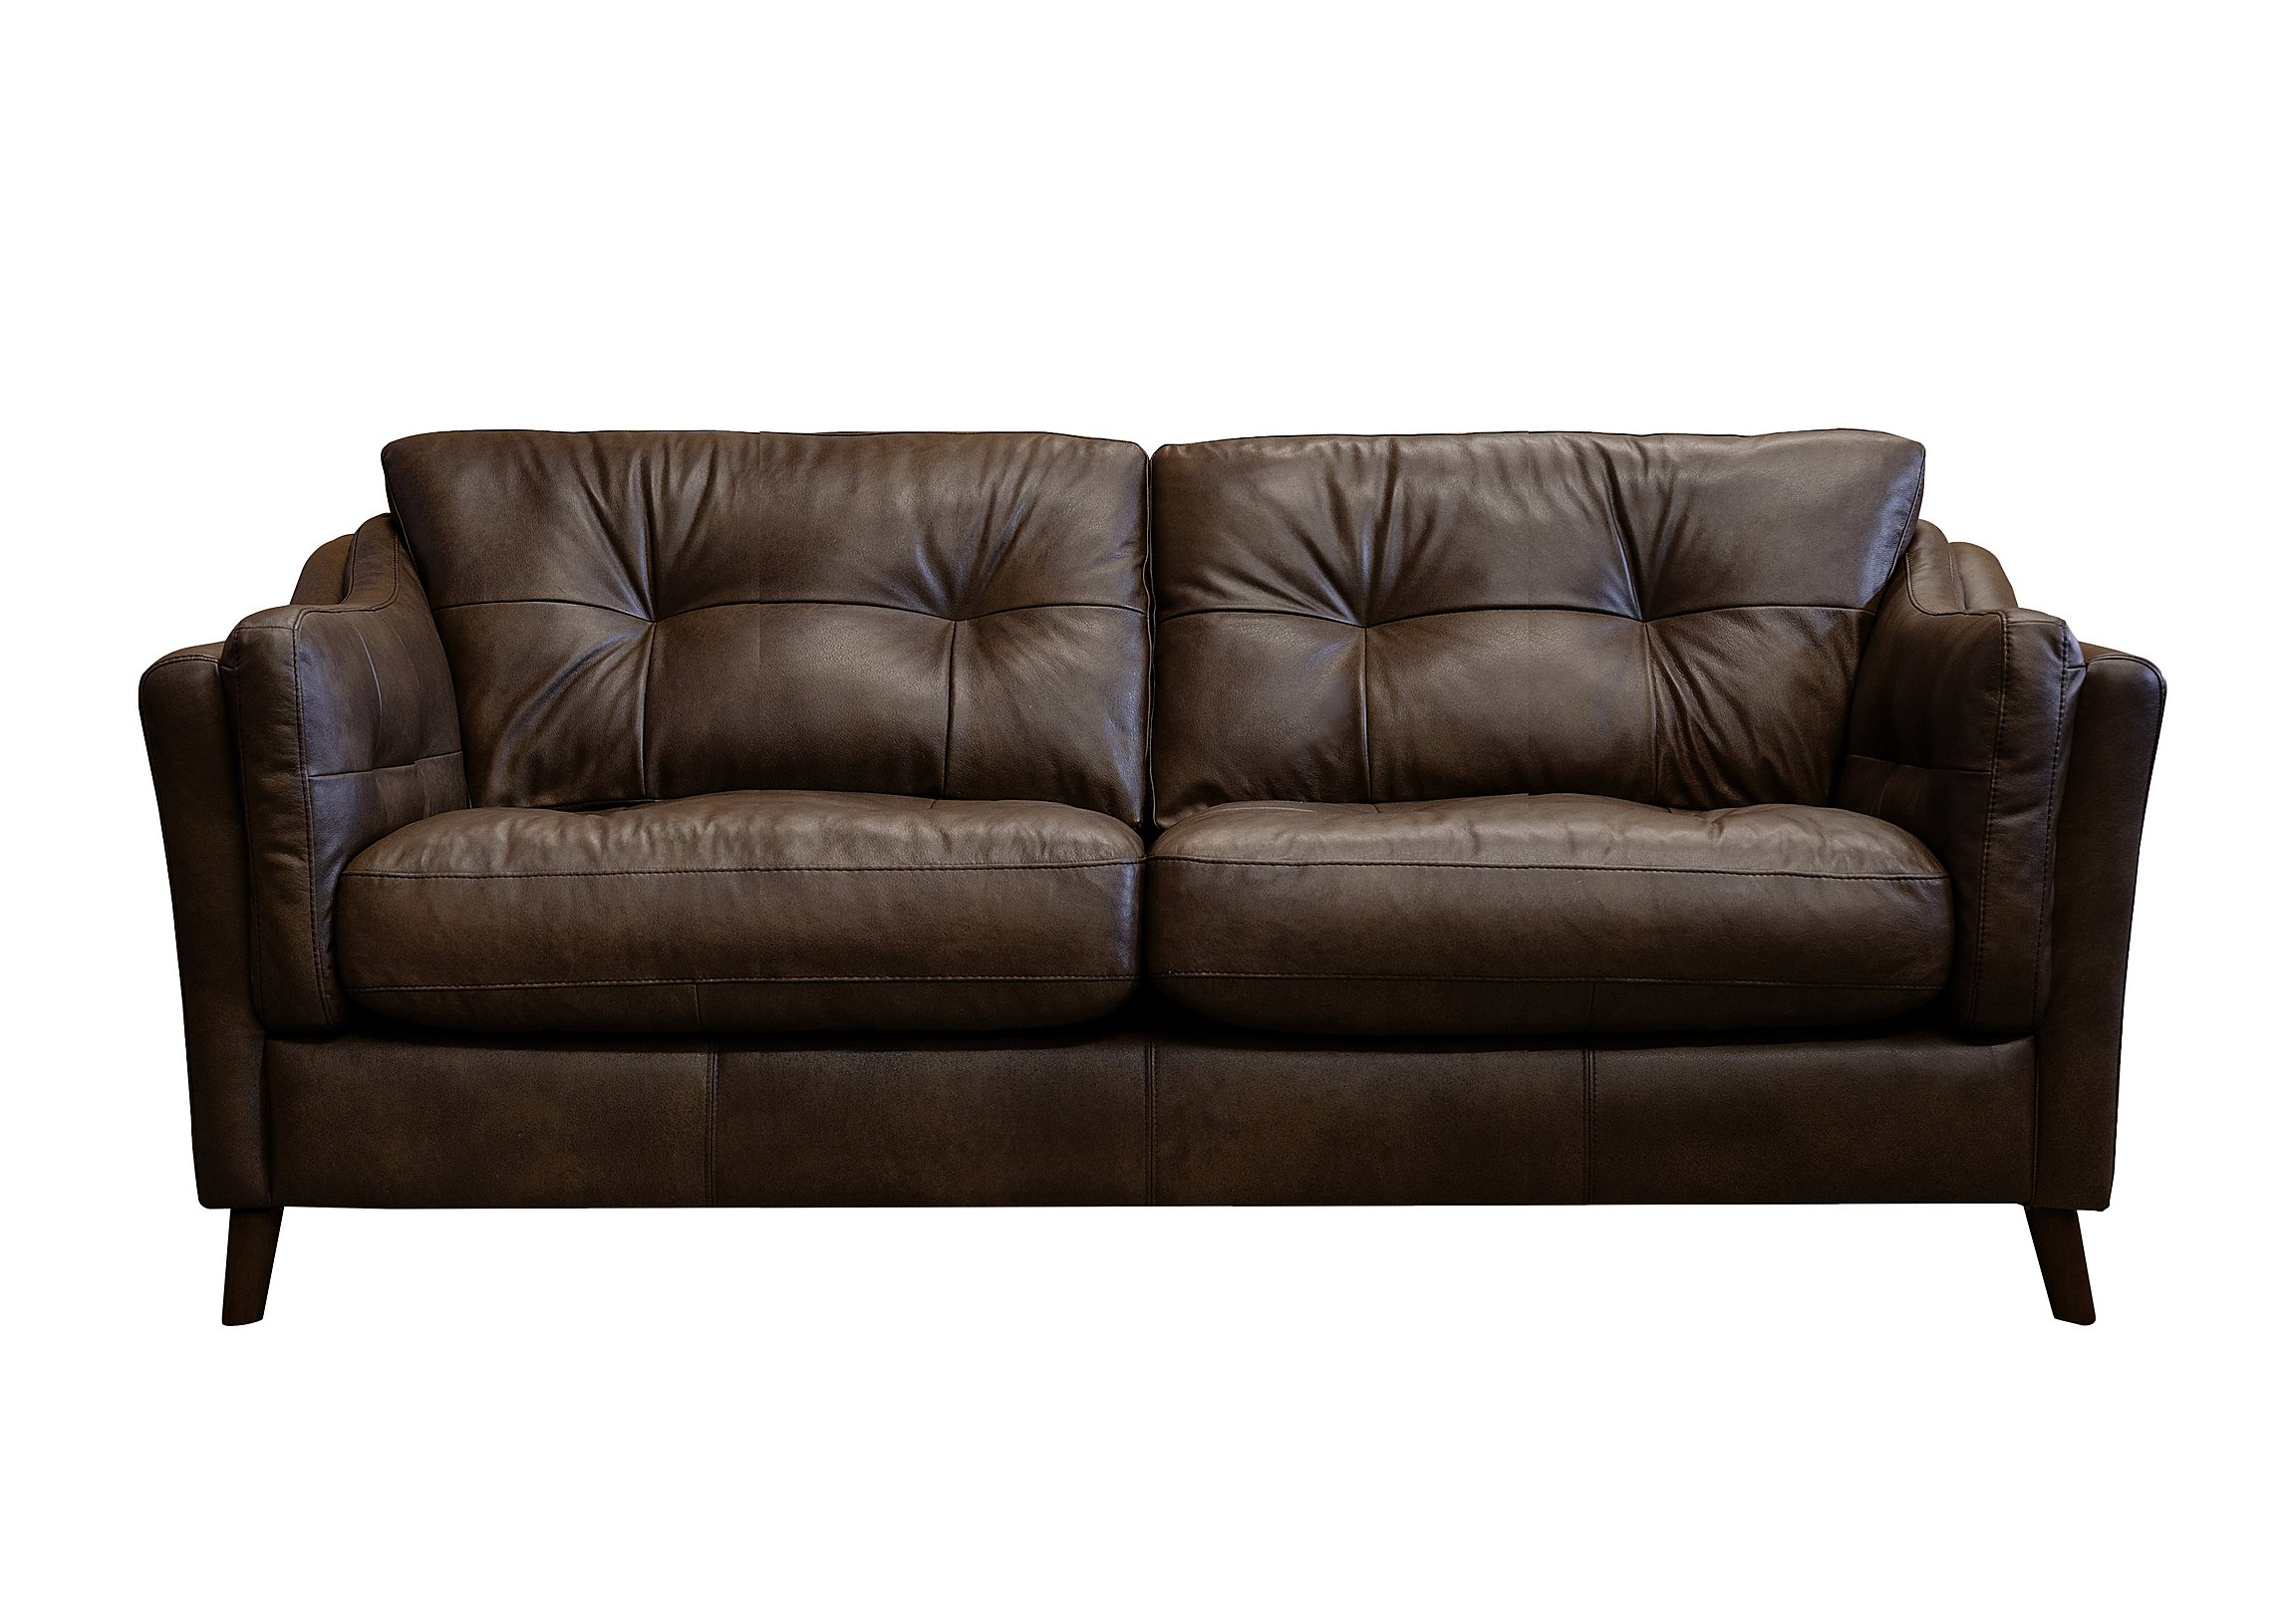 Loft Living 3 Seater Leather Sofa